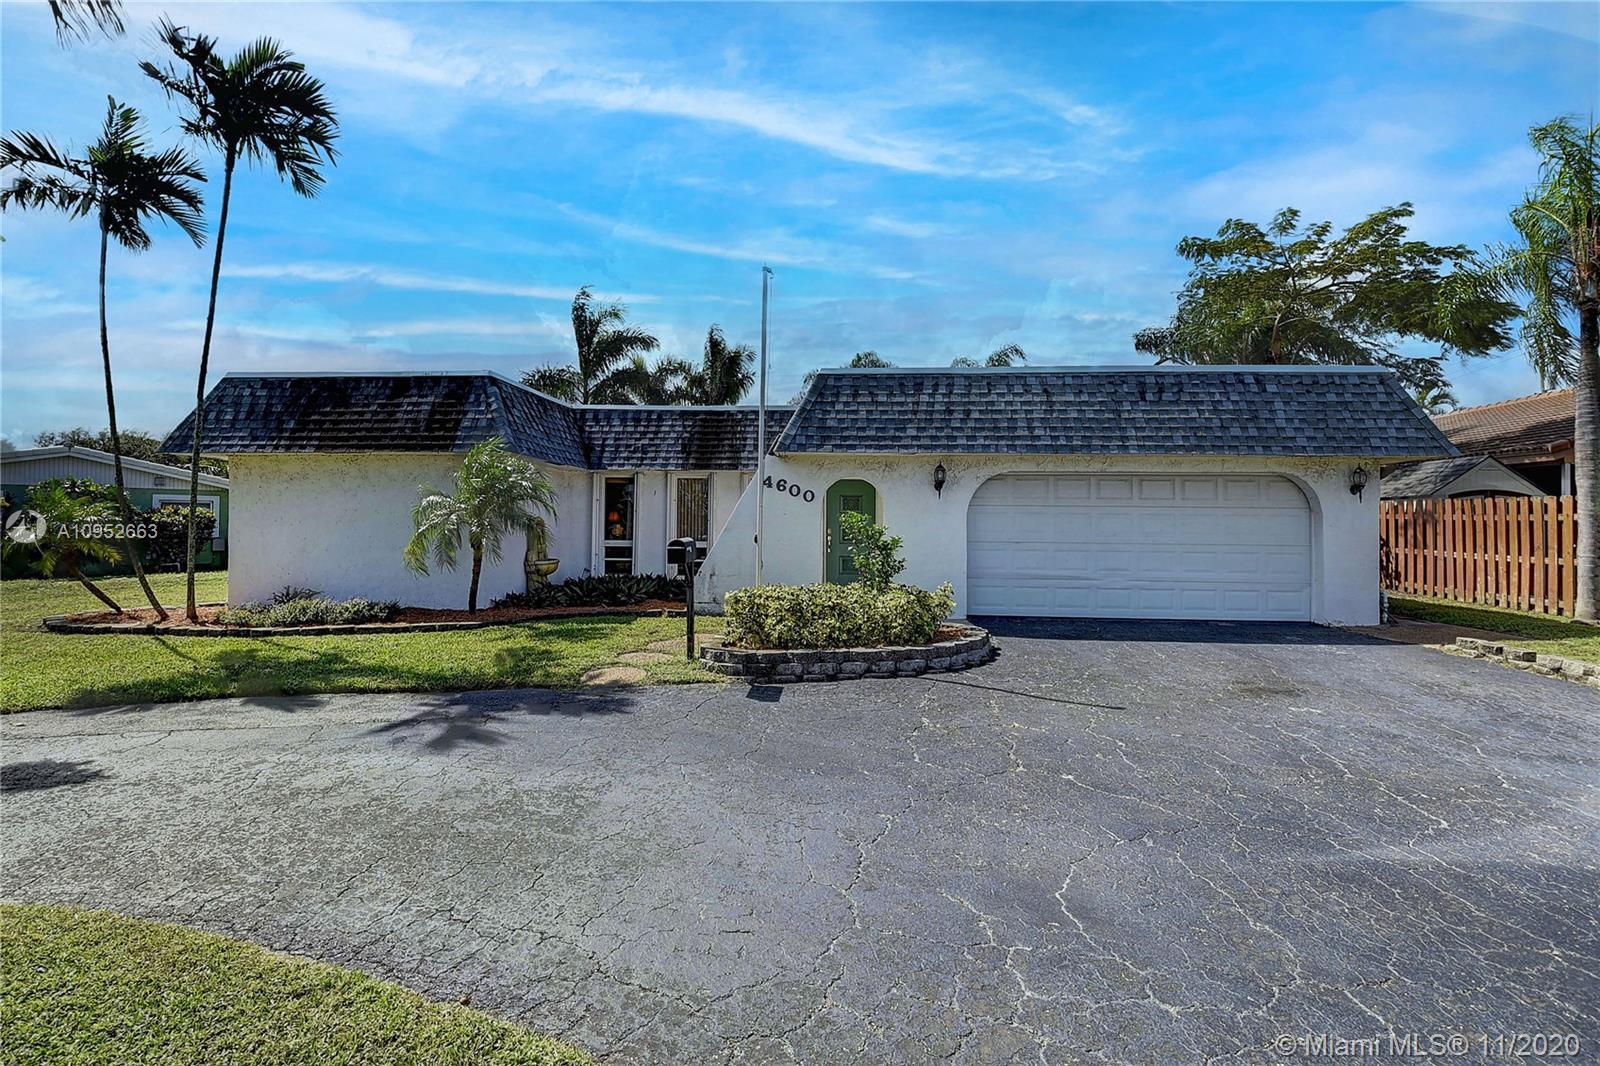 Now is your chance to live in East Boca!  This charming 3 bedroom Boca Raton Hills home has a split